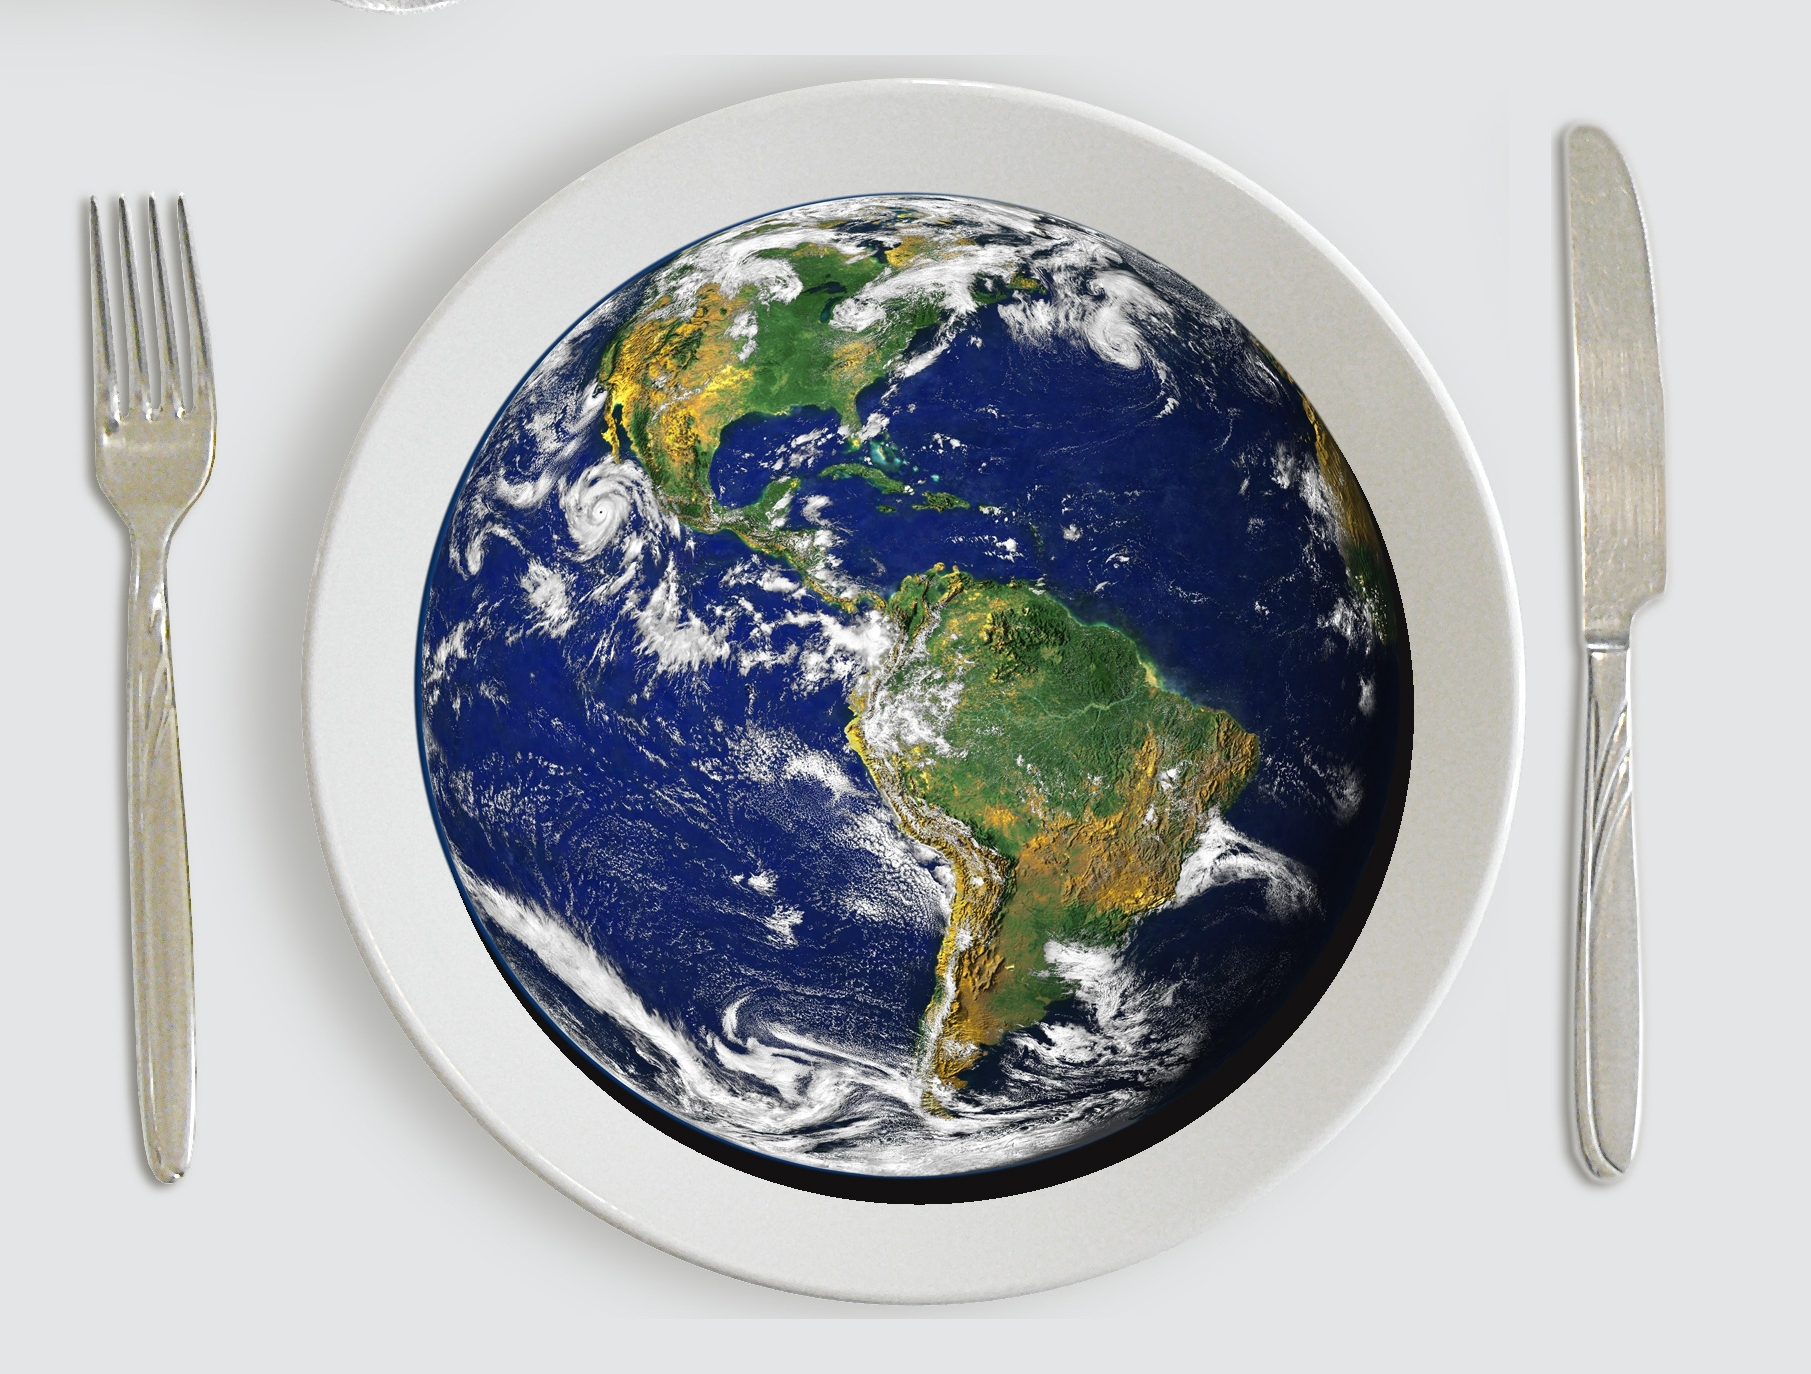 Earth on a plate (images from Pixabay)